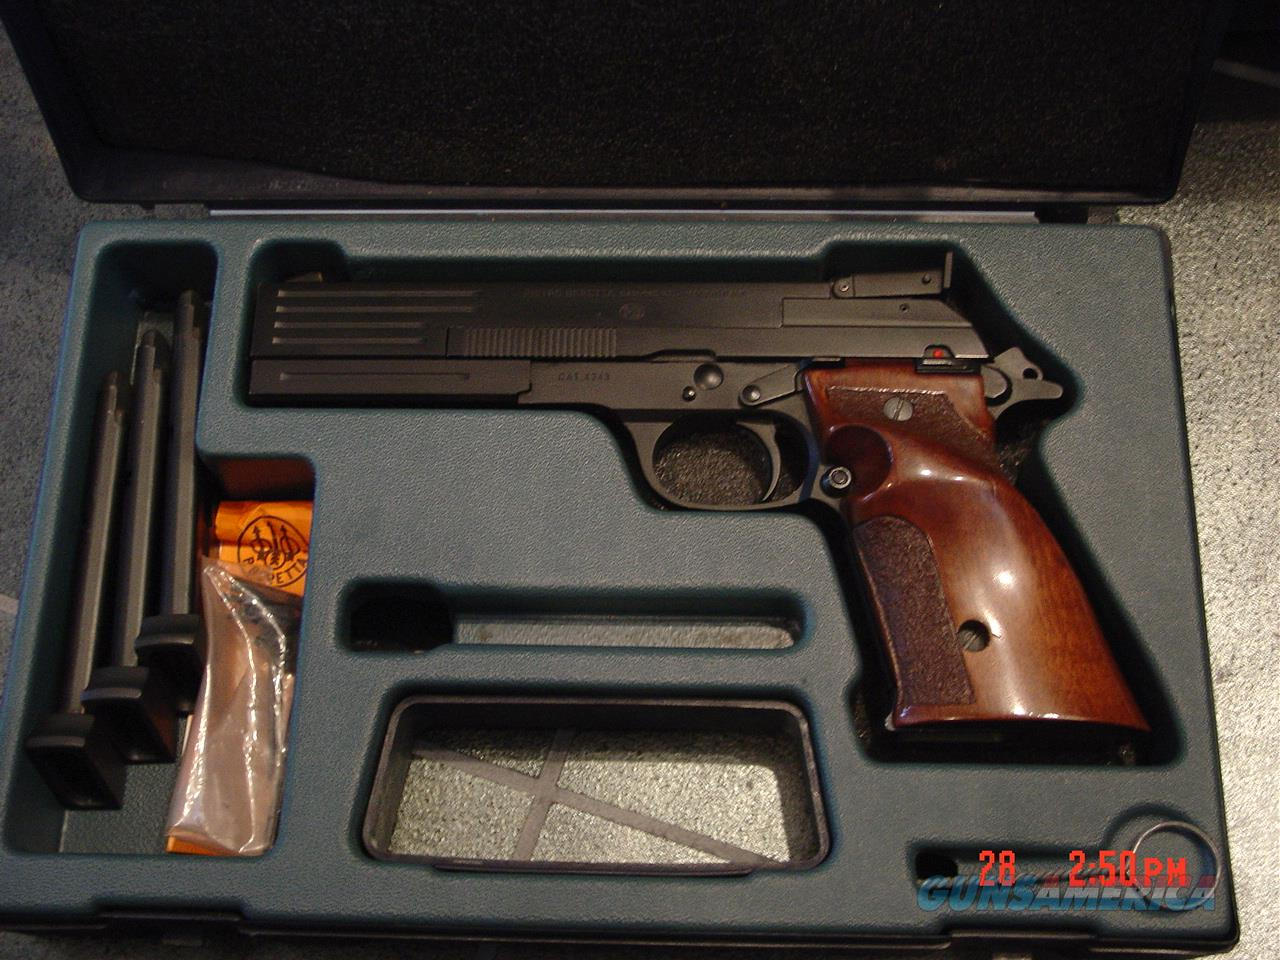 Beretta rare Model 89 Target pistol,with heavy barrel,22LR,adj.site,walnut grips,& 4-10 round magazines,extra front sites,original box,feels great in the hands !!  Guns > Pistols > Beretta Pistols > Rare & Collectible